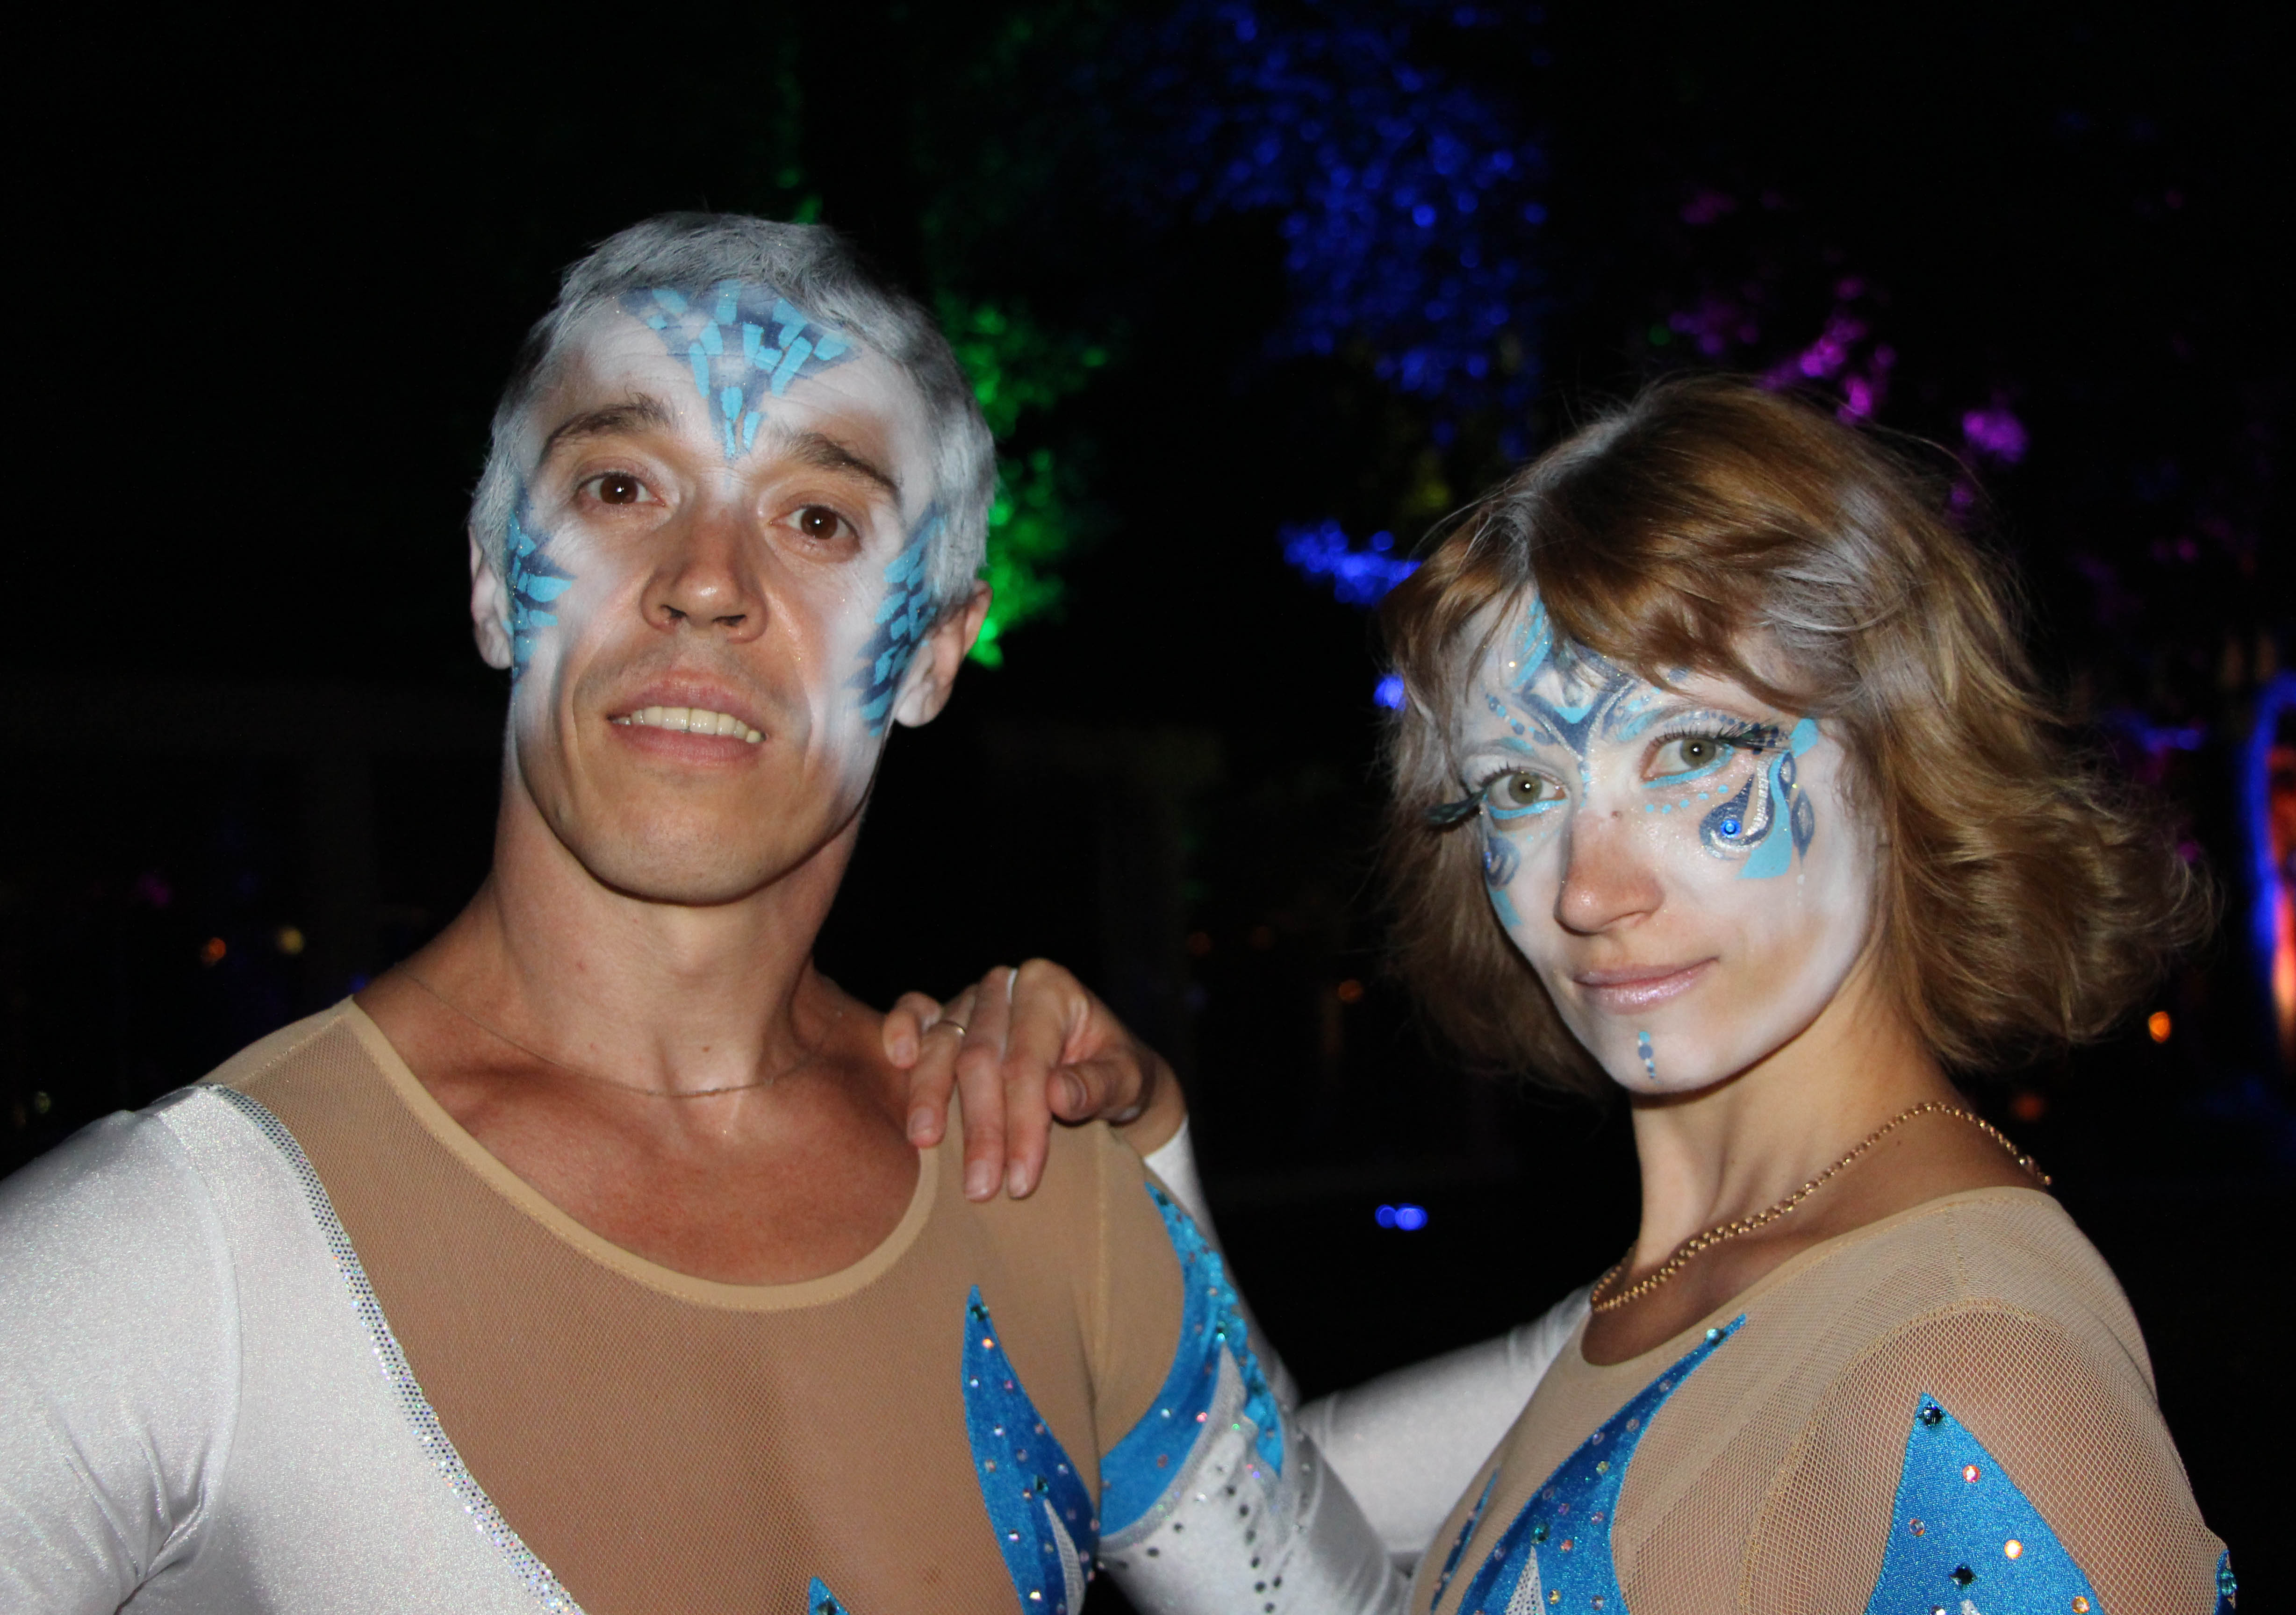 circus artists Aniskin on the event - make up